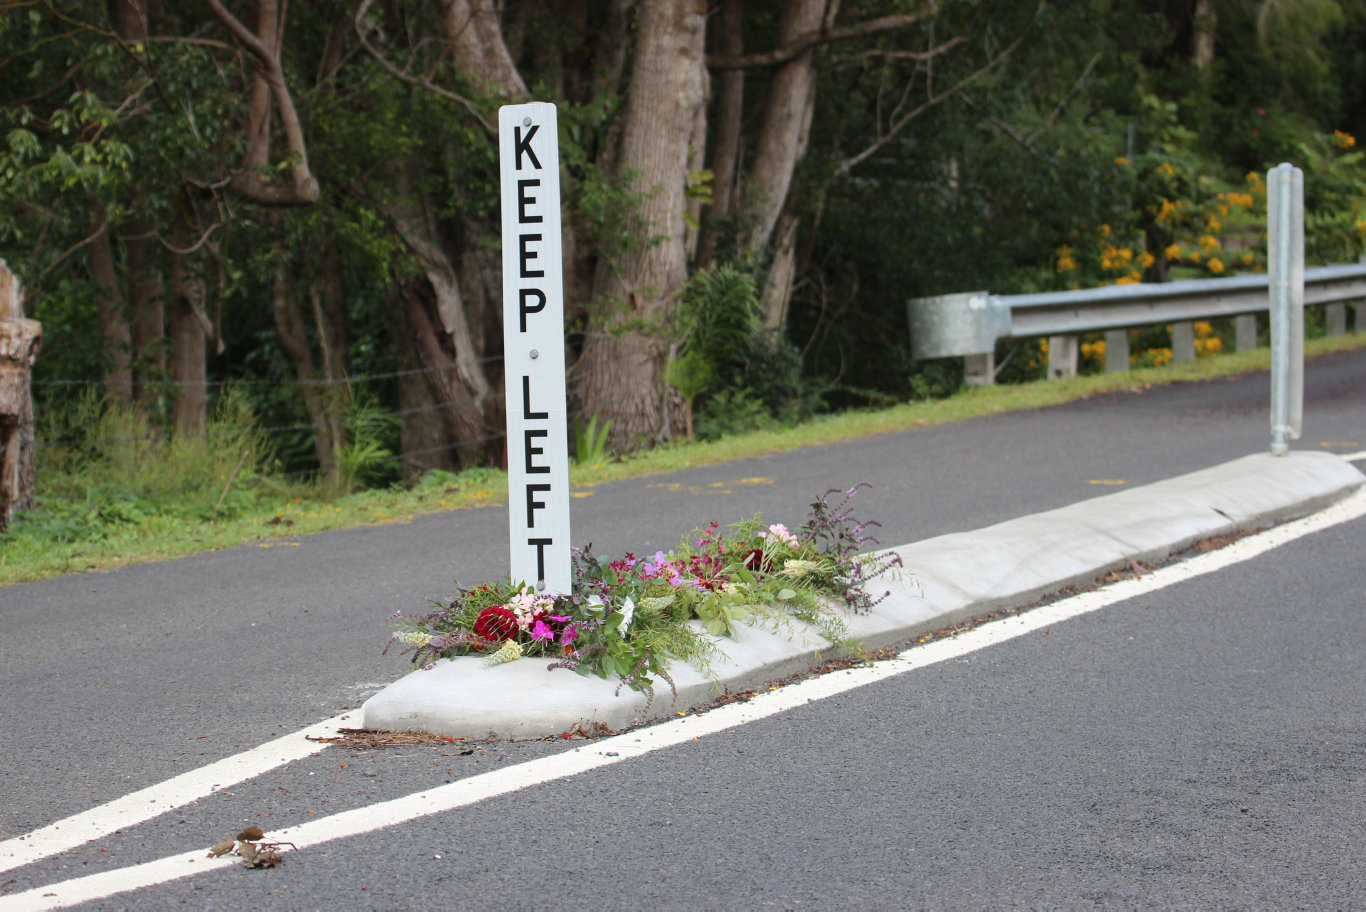 Flowers on Cecil St, Nimbin, where a pedestrian was fatally struck by a vehicle in an alleged hit-and-run incident overnight.